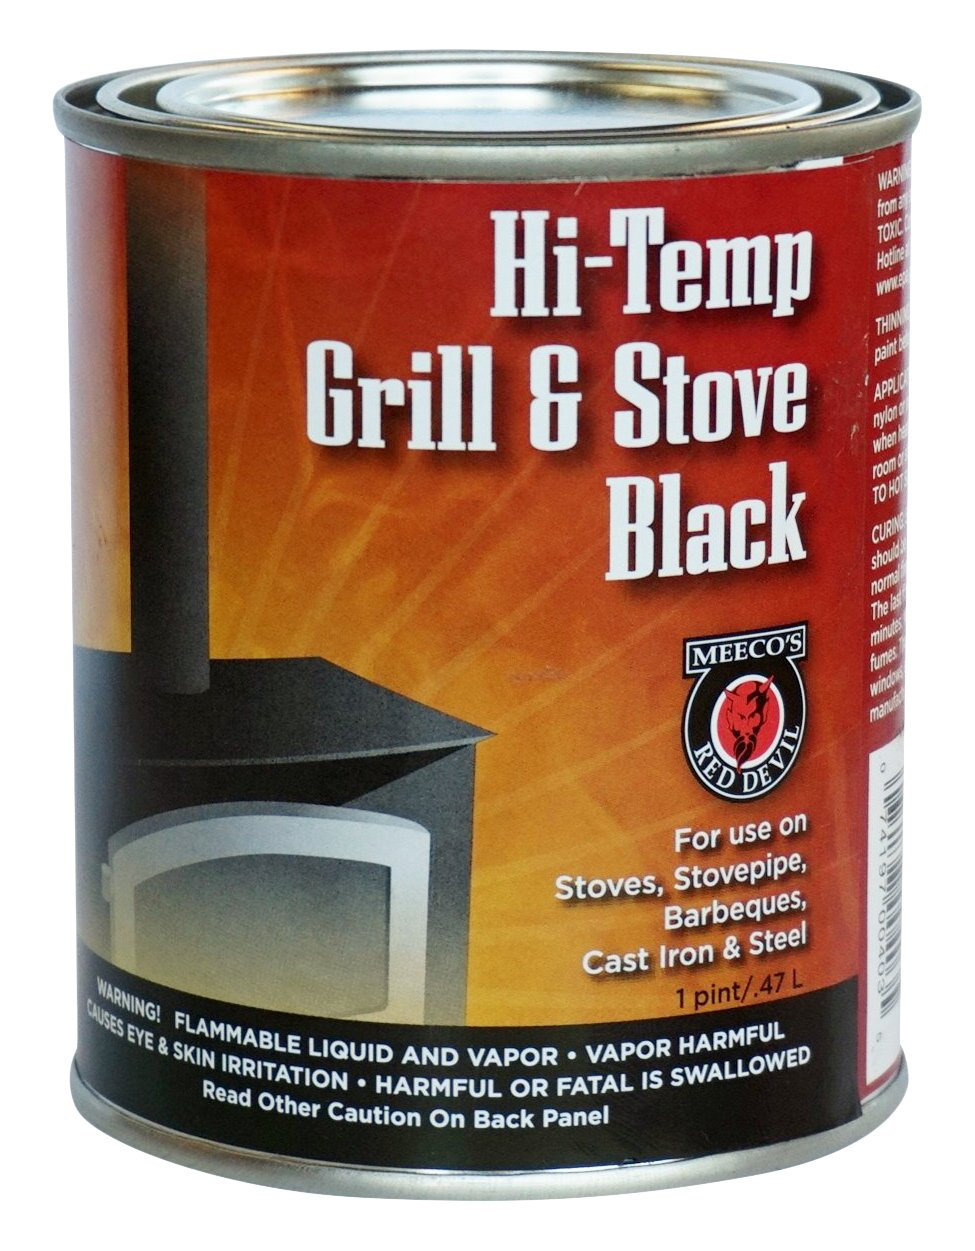 MEECO'S RED DEVIL 403 Hi-Temp Grill and Stove, Black MEECO MFG CO INC